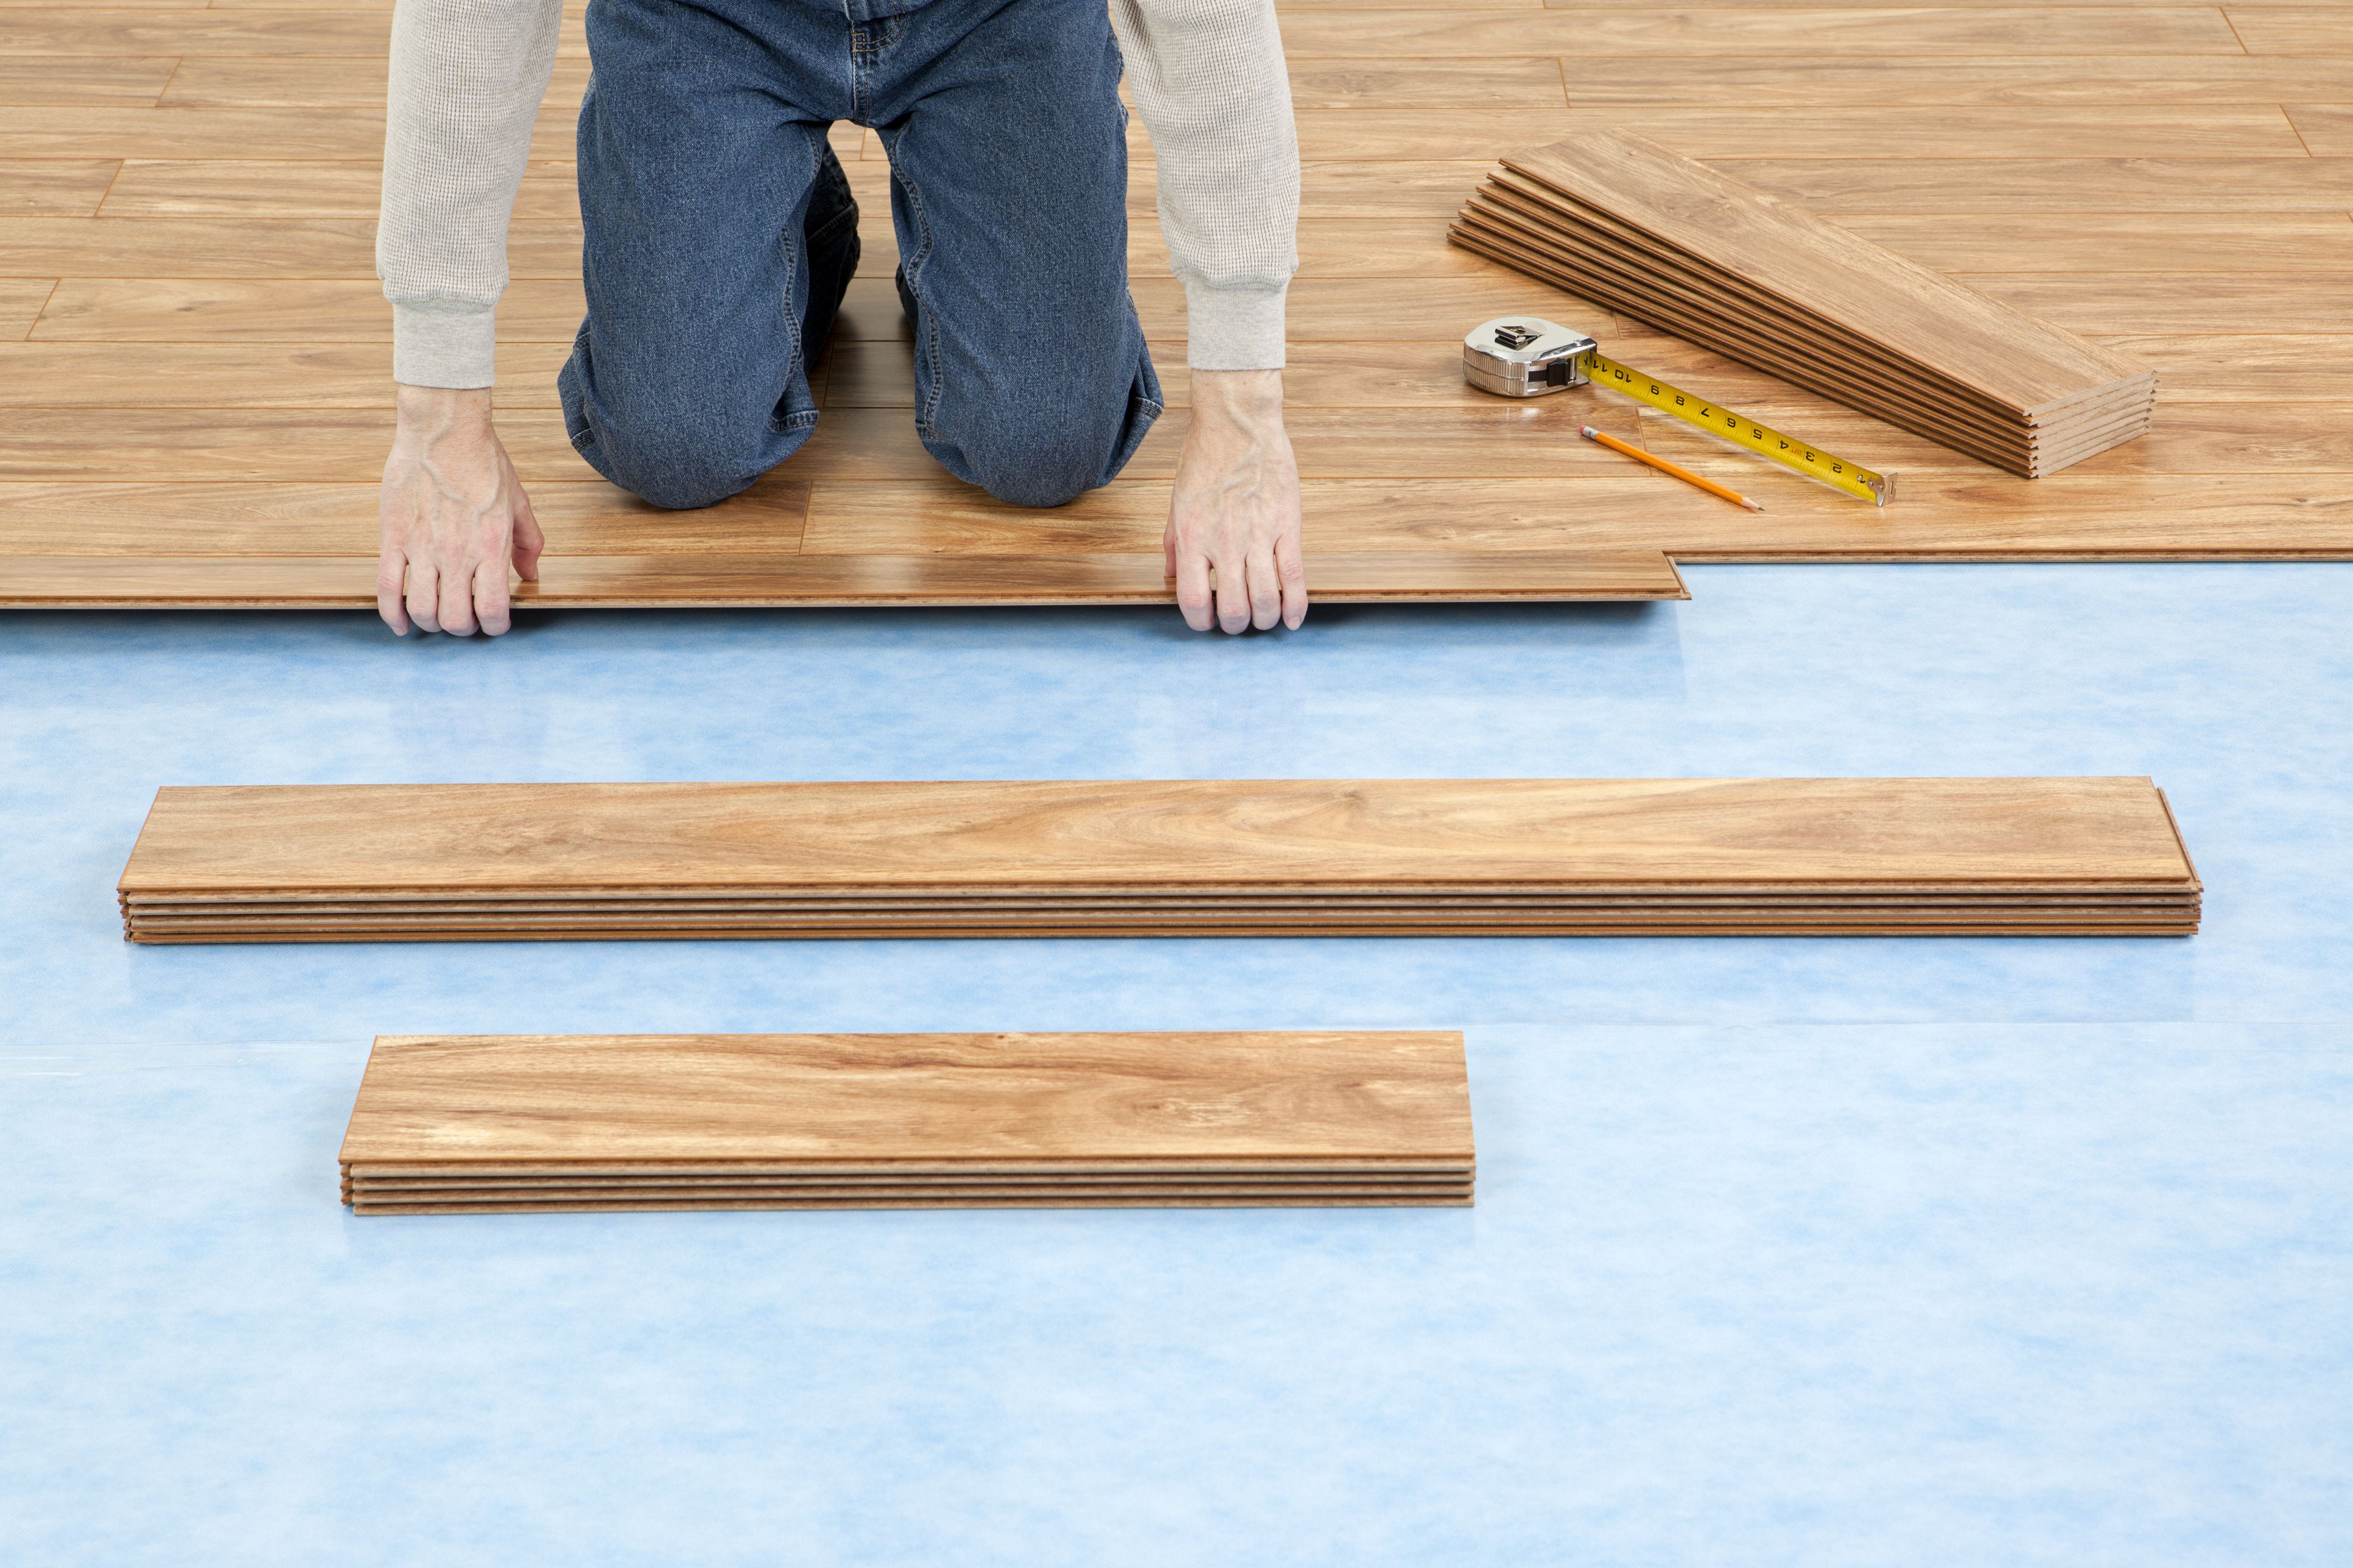 floating vs gluing hardwood floors of installing laminate flooring with attached underlayment within new floor installation 155283725 582735c03df78c6f6af8ac80